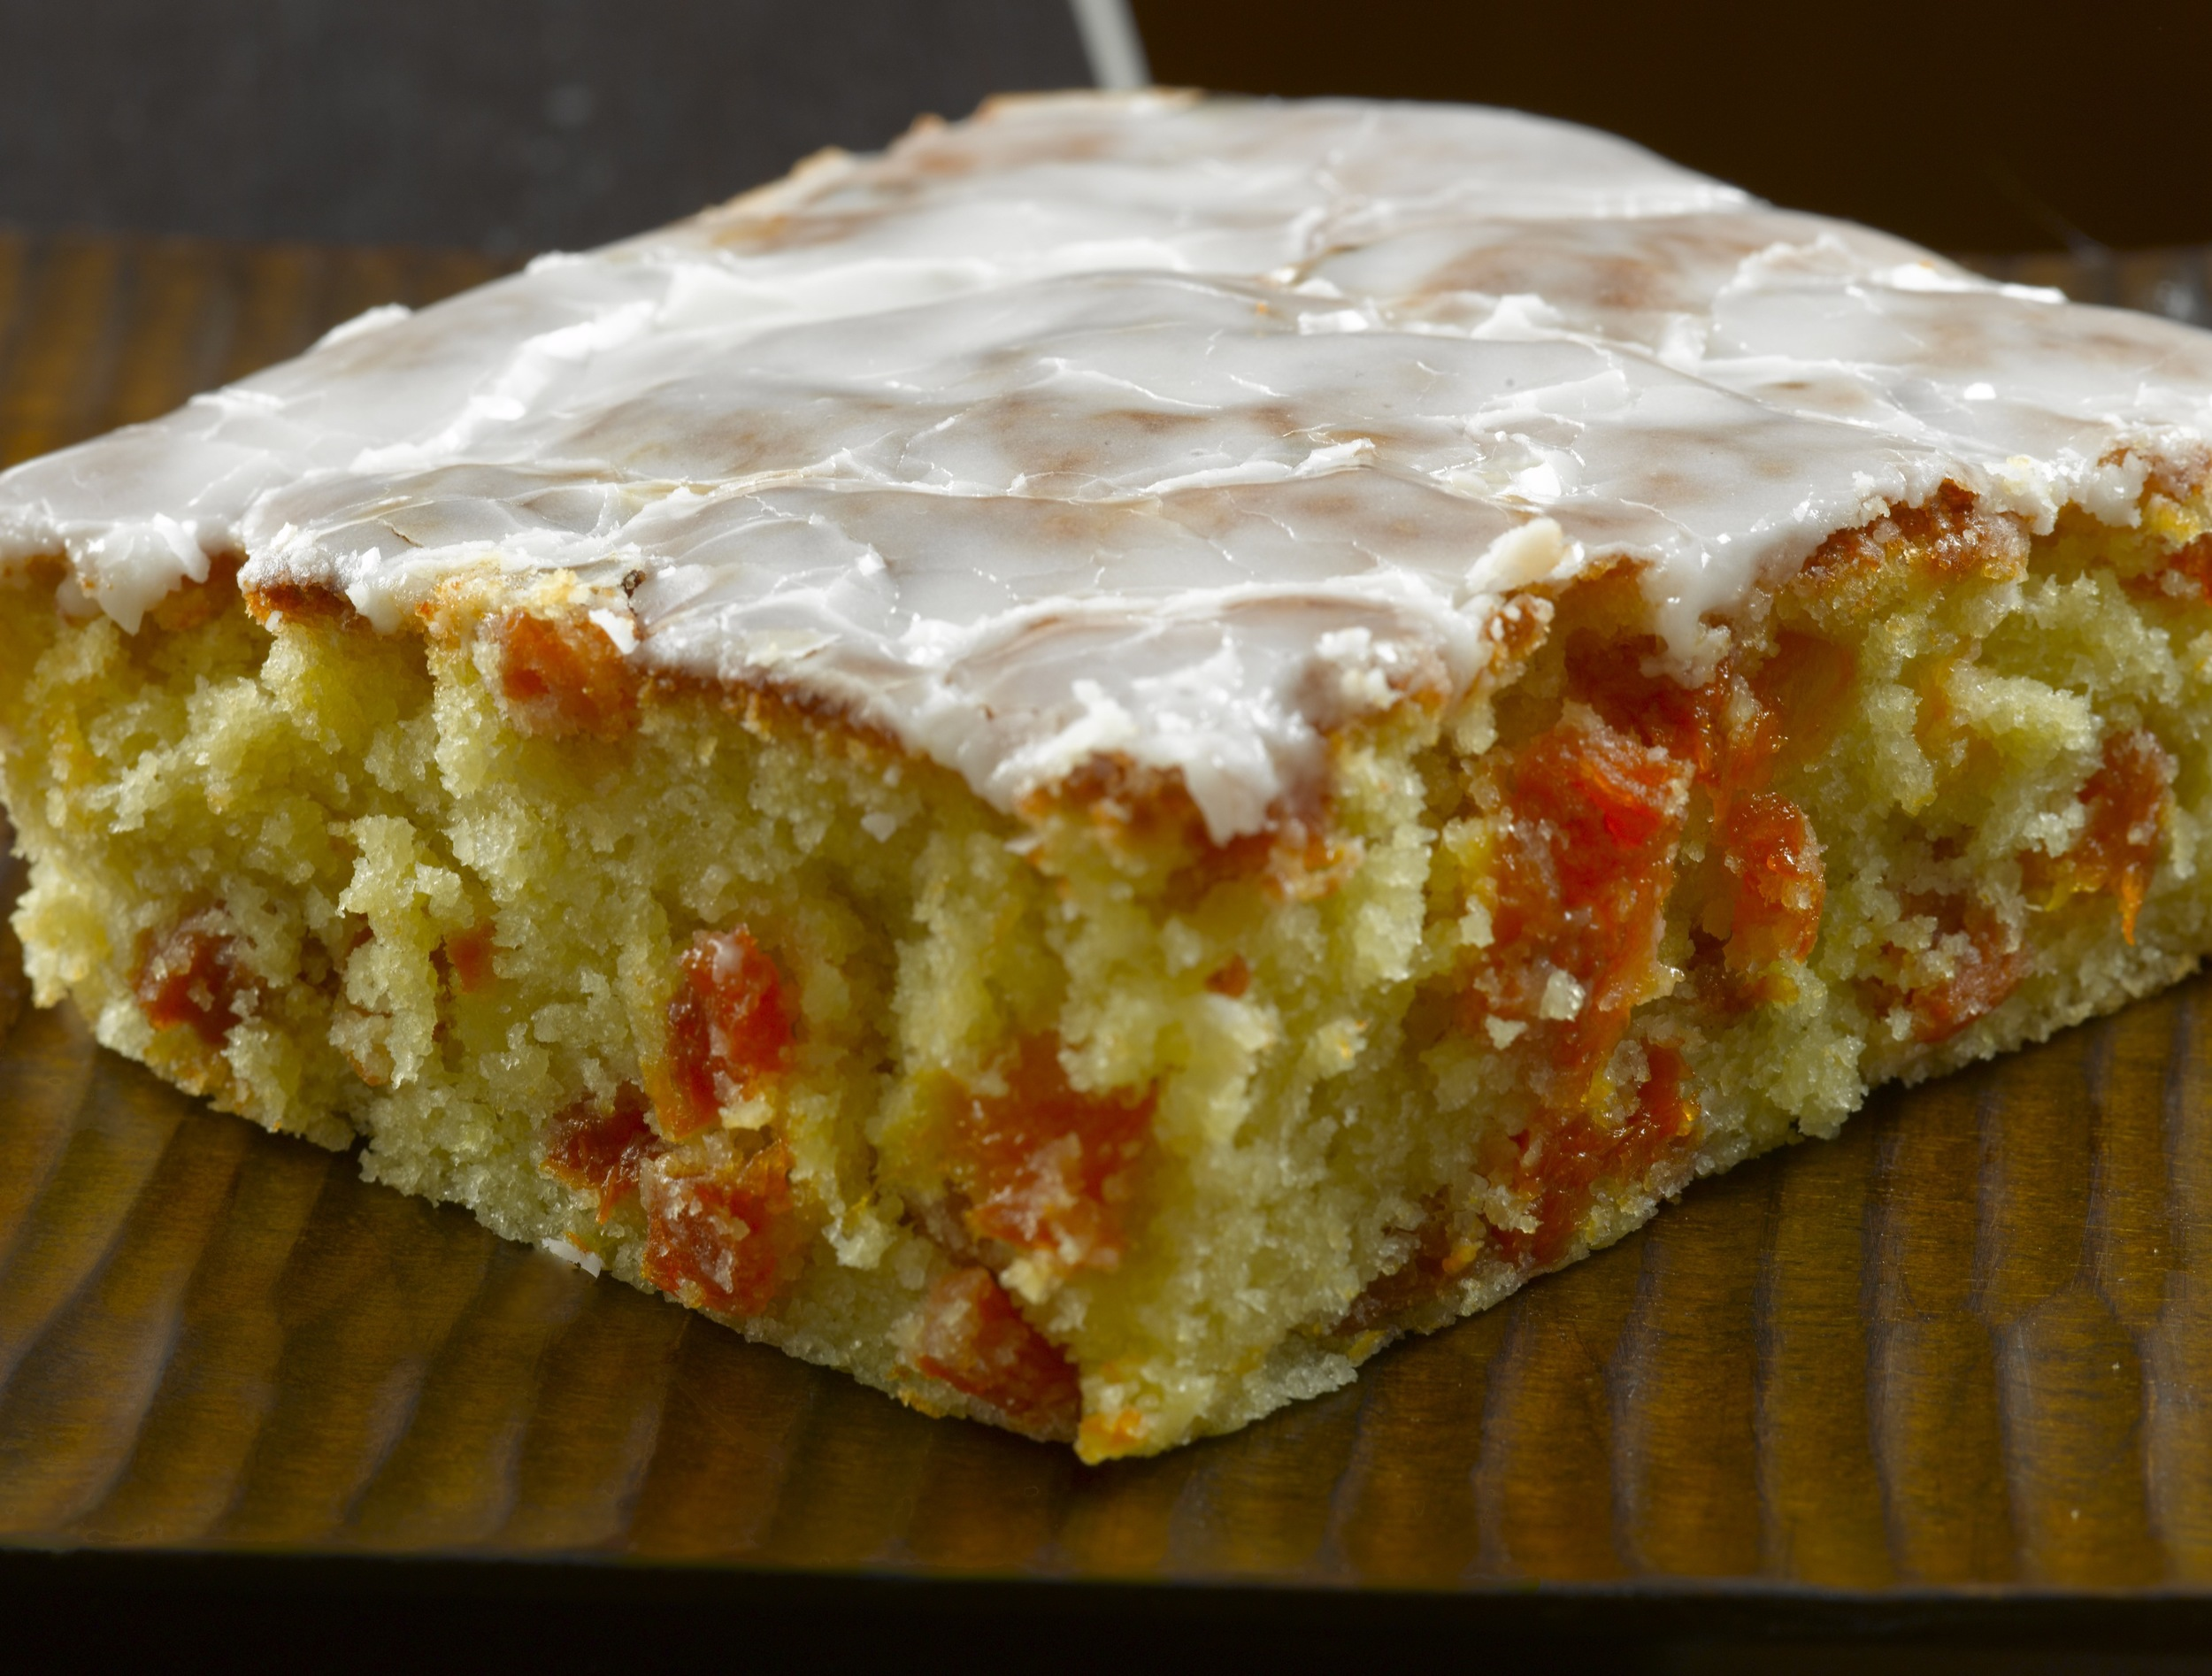 Lemon Olive Oil Cake with Drunken Apricot  : This recipe creates a dense, moist cake with a savory quality from olive oil and honey, enhanced by the flavor of almond and cognac-soaked apricots.